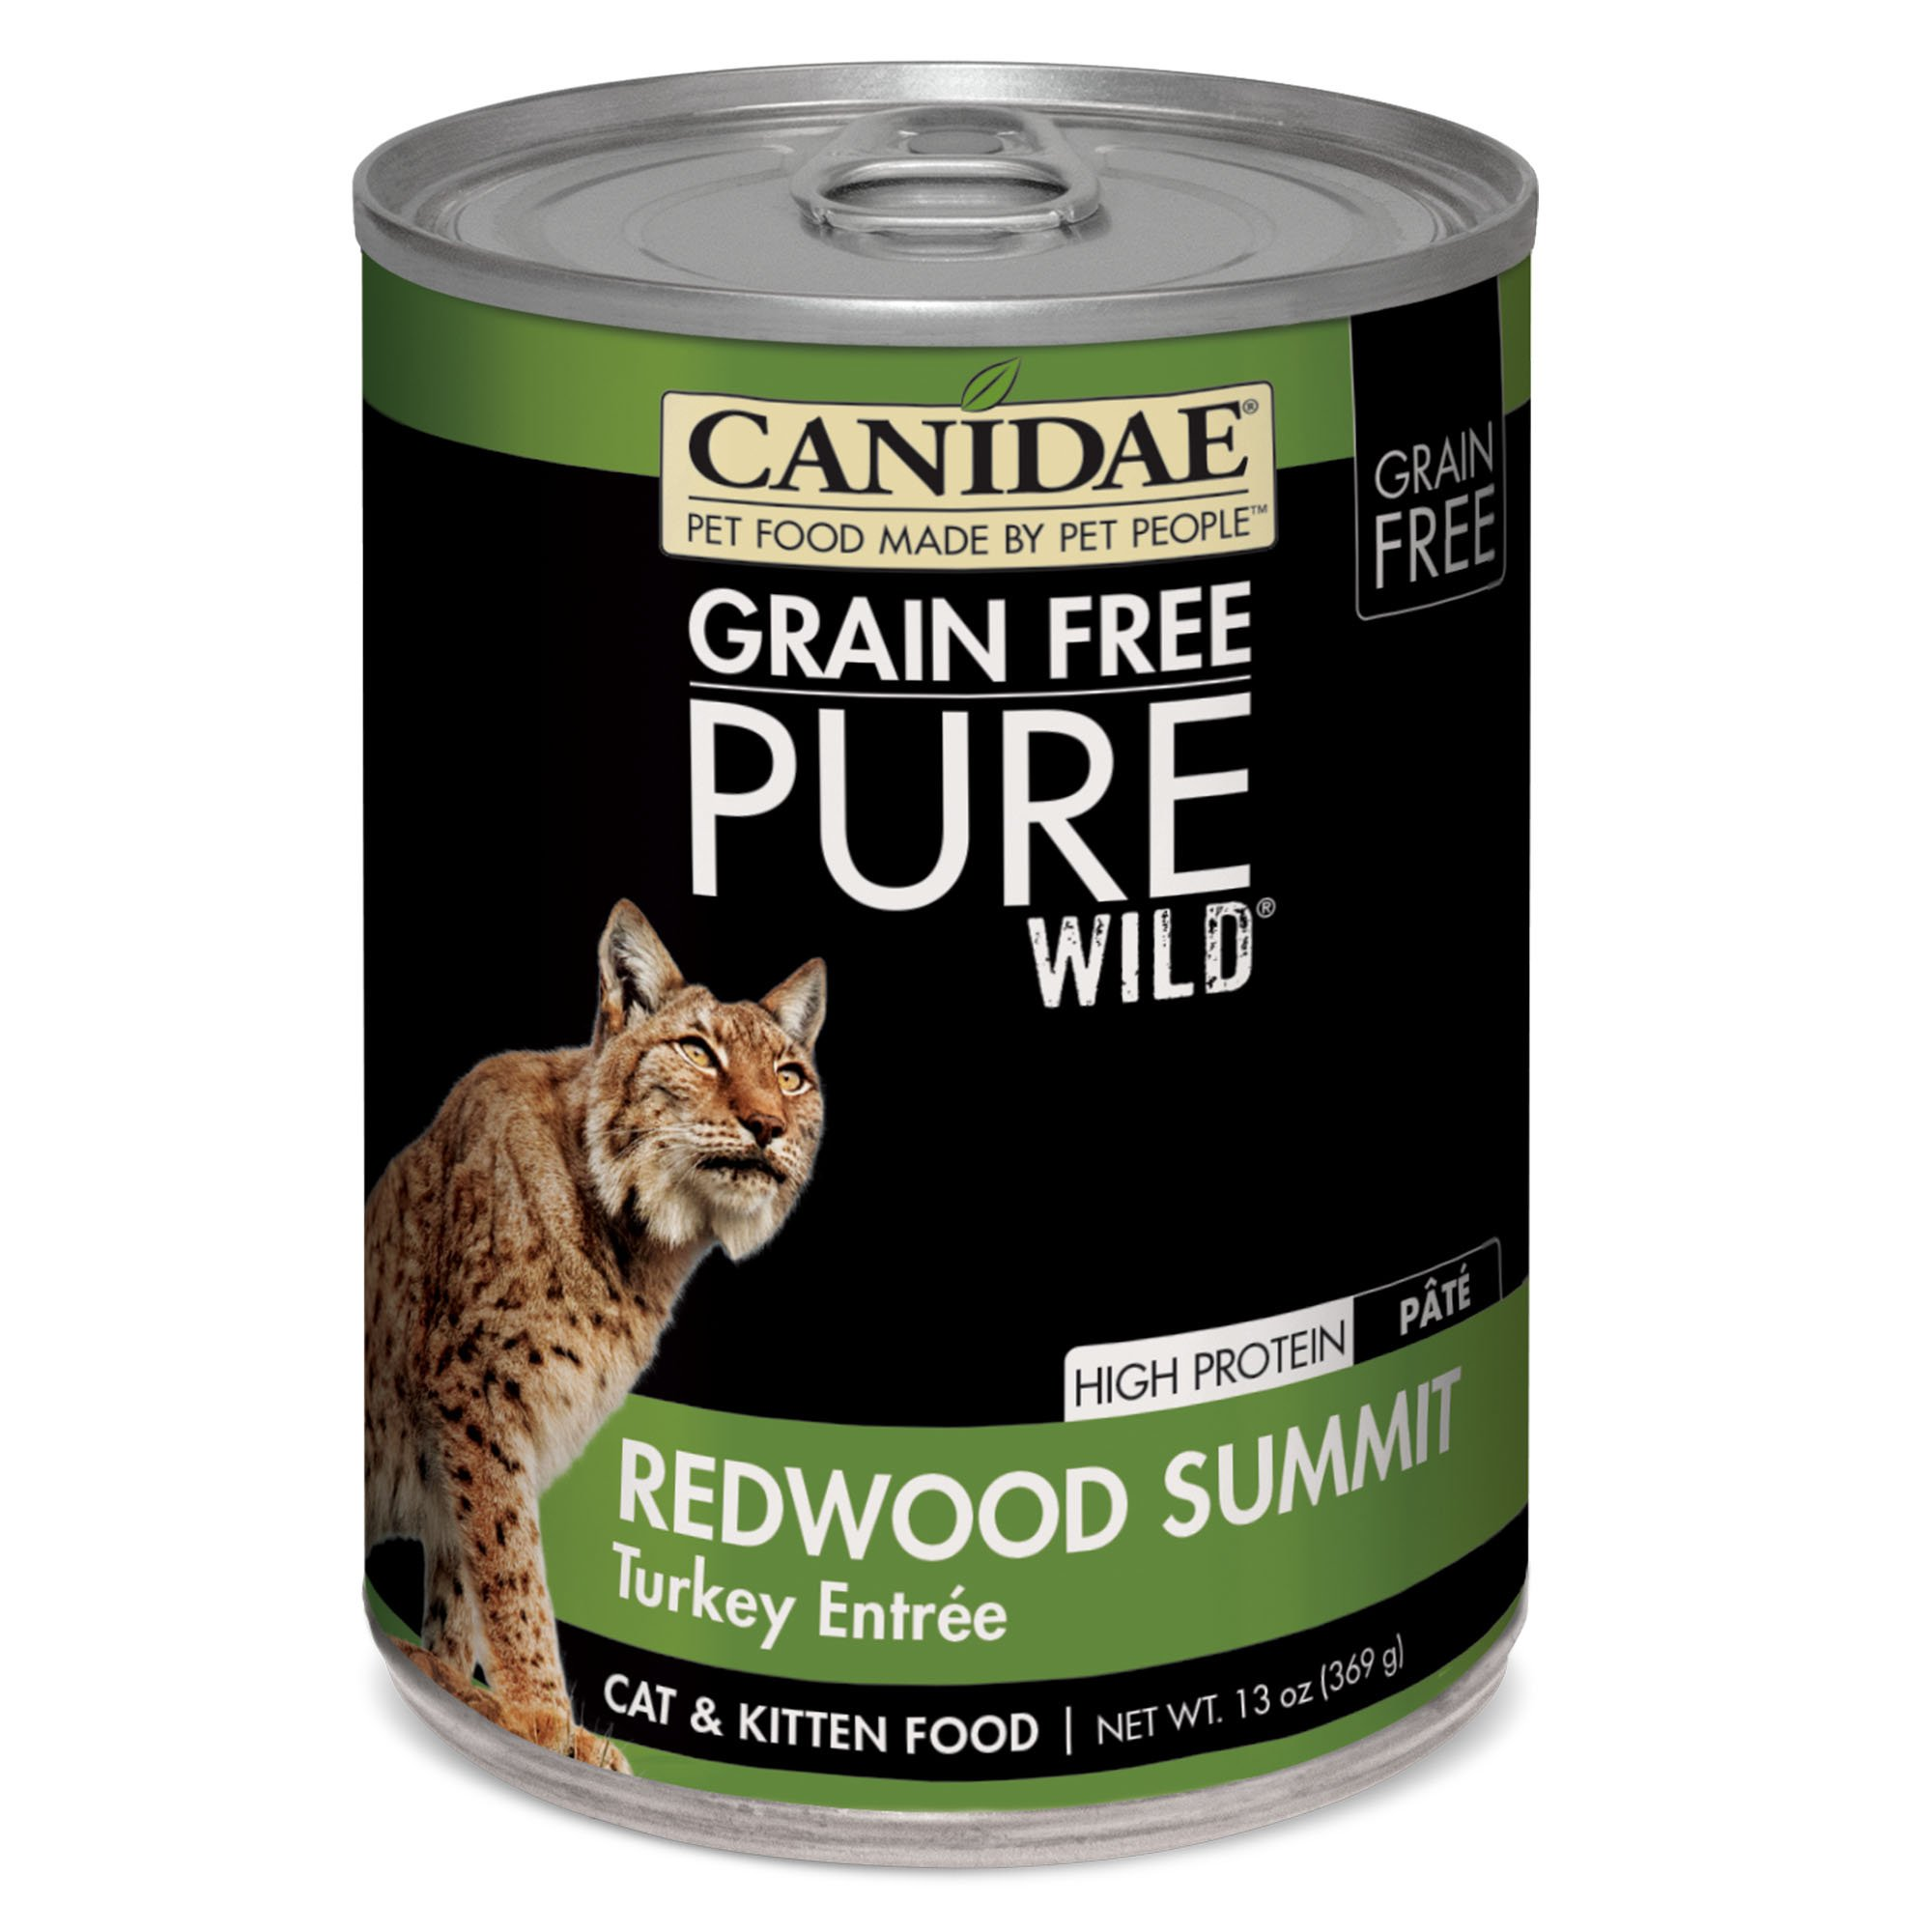 CANIDAE Grain Free PURE WILD: Redwood Summit Cat Wet Food with Turkey, 13 oz (12-pack) by CANIDAE (Image #1)